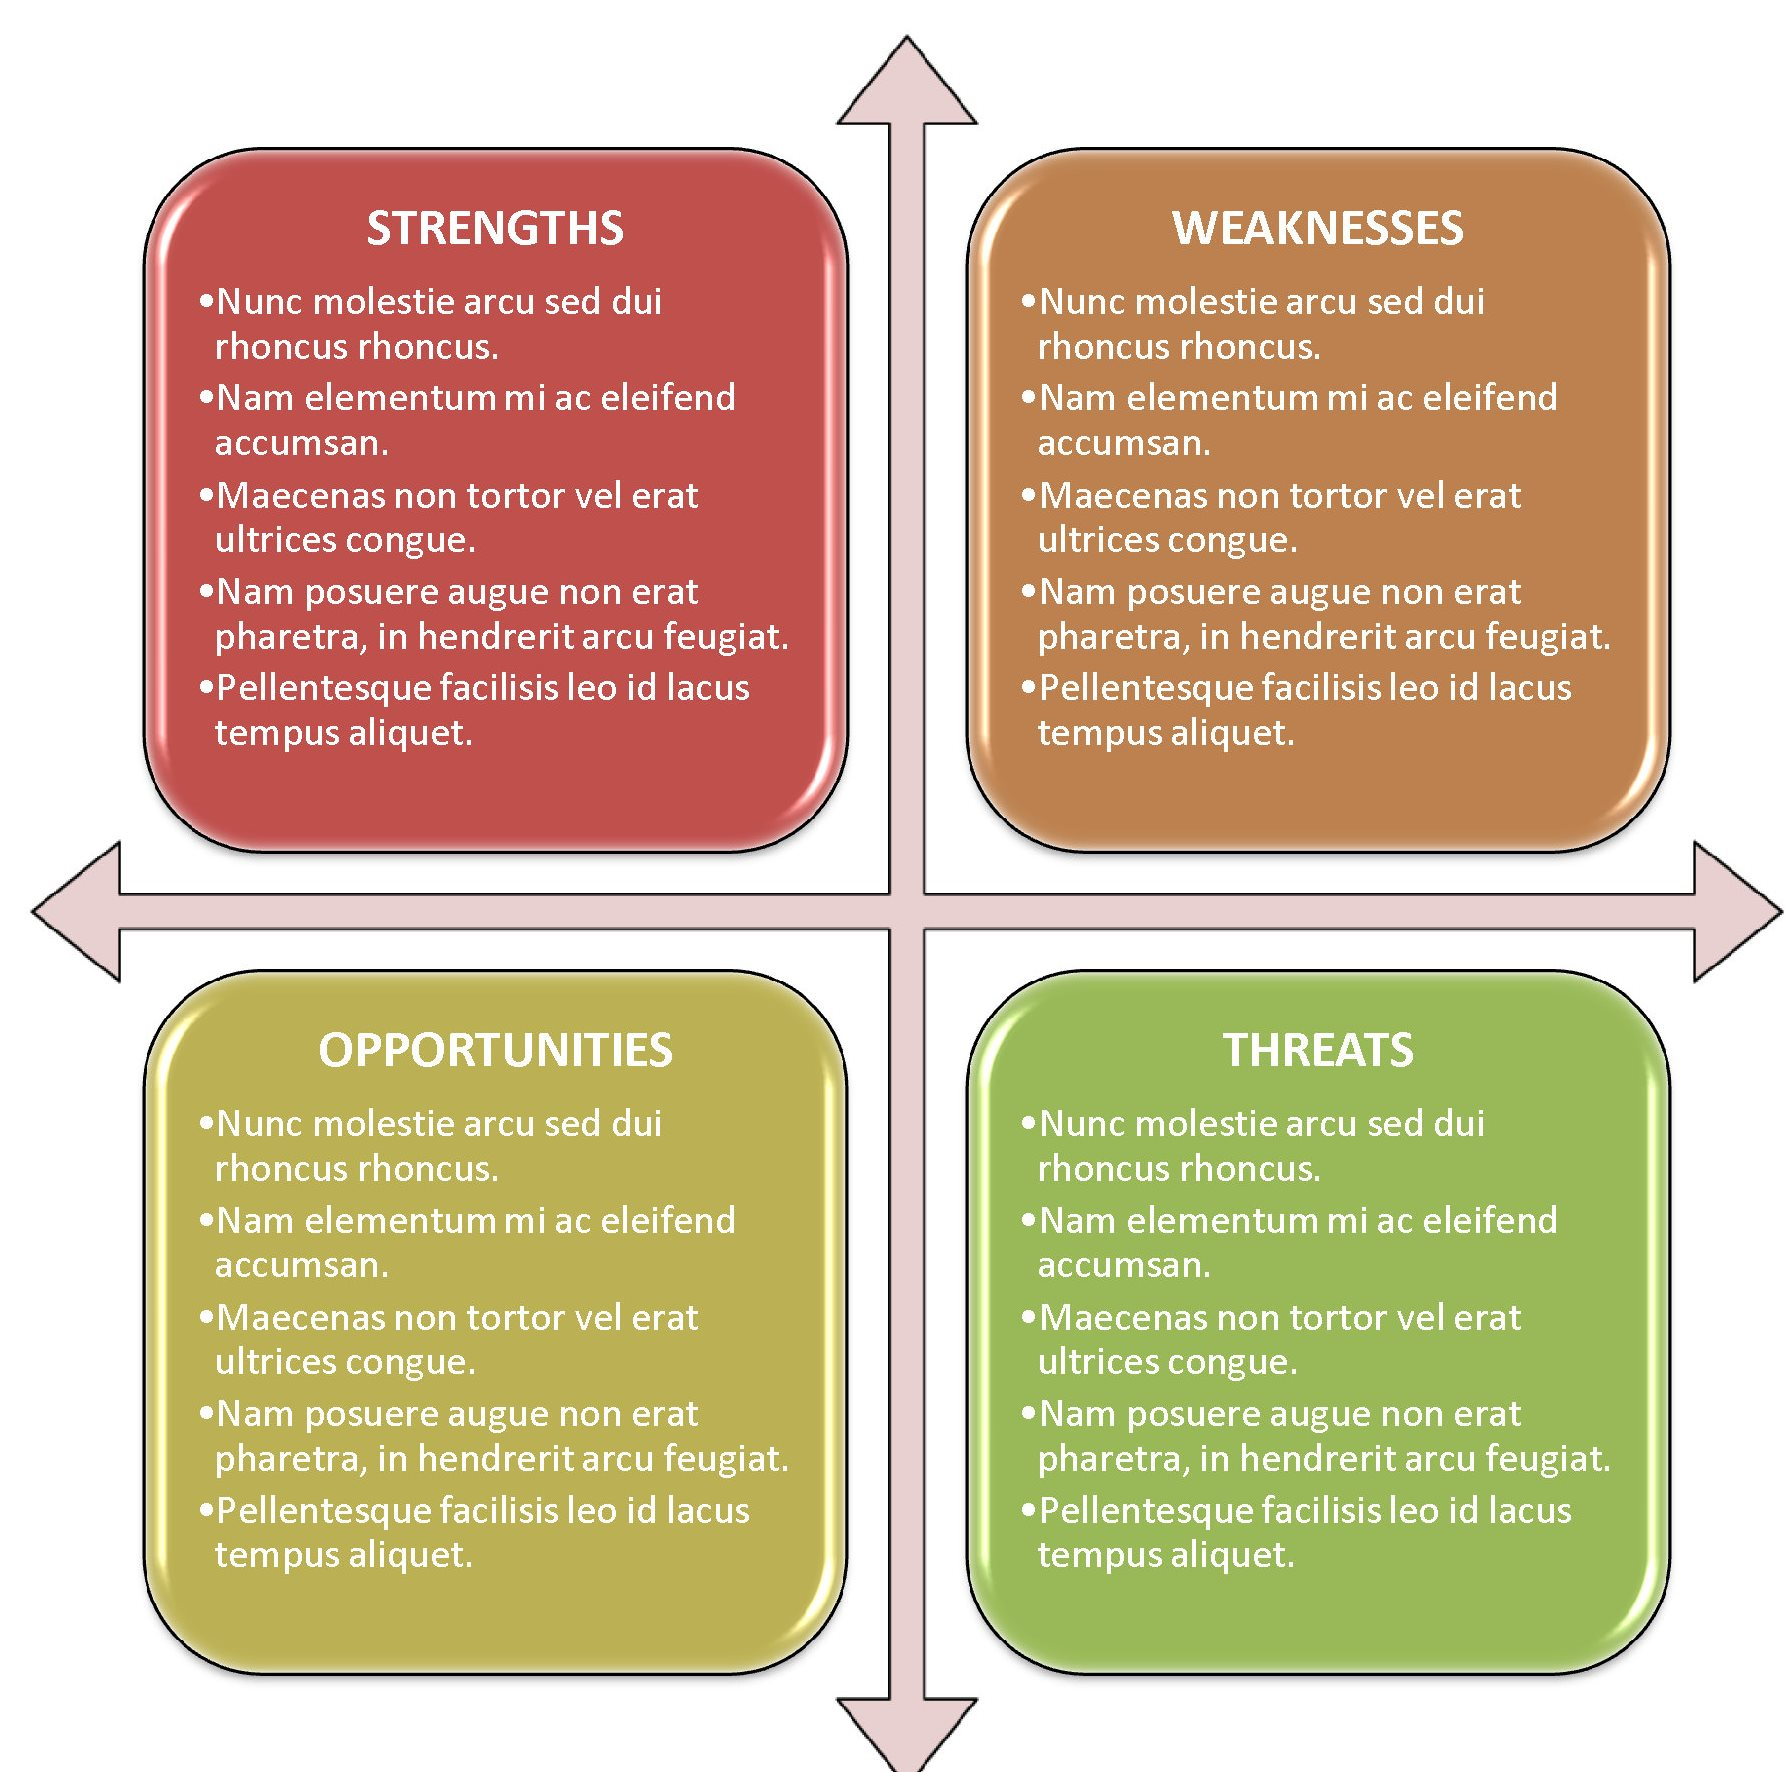 swot analysis excel template – Blank Swot Analysis Template